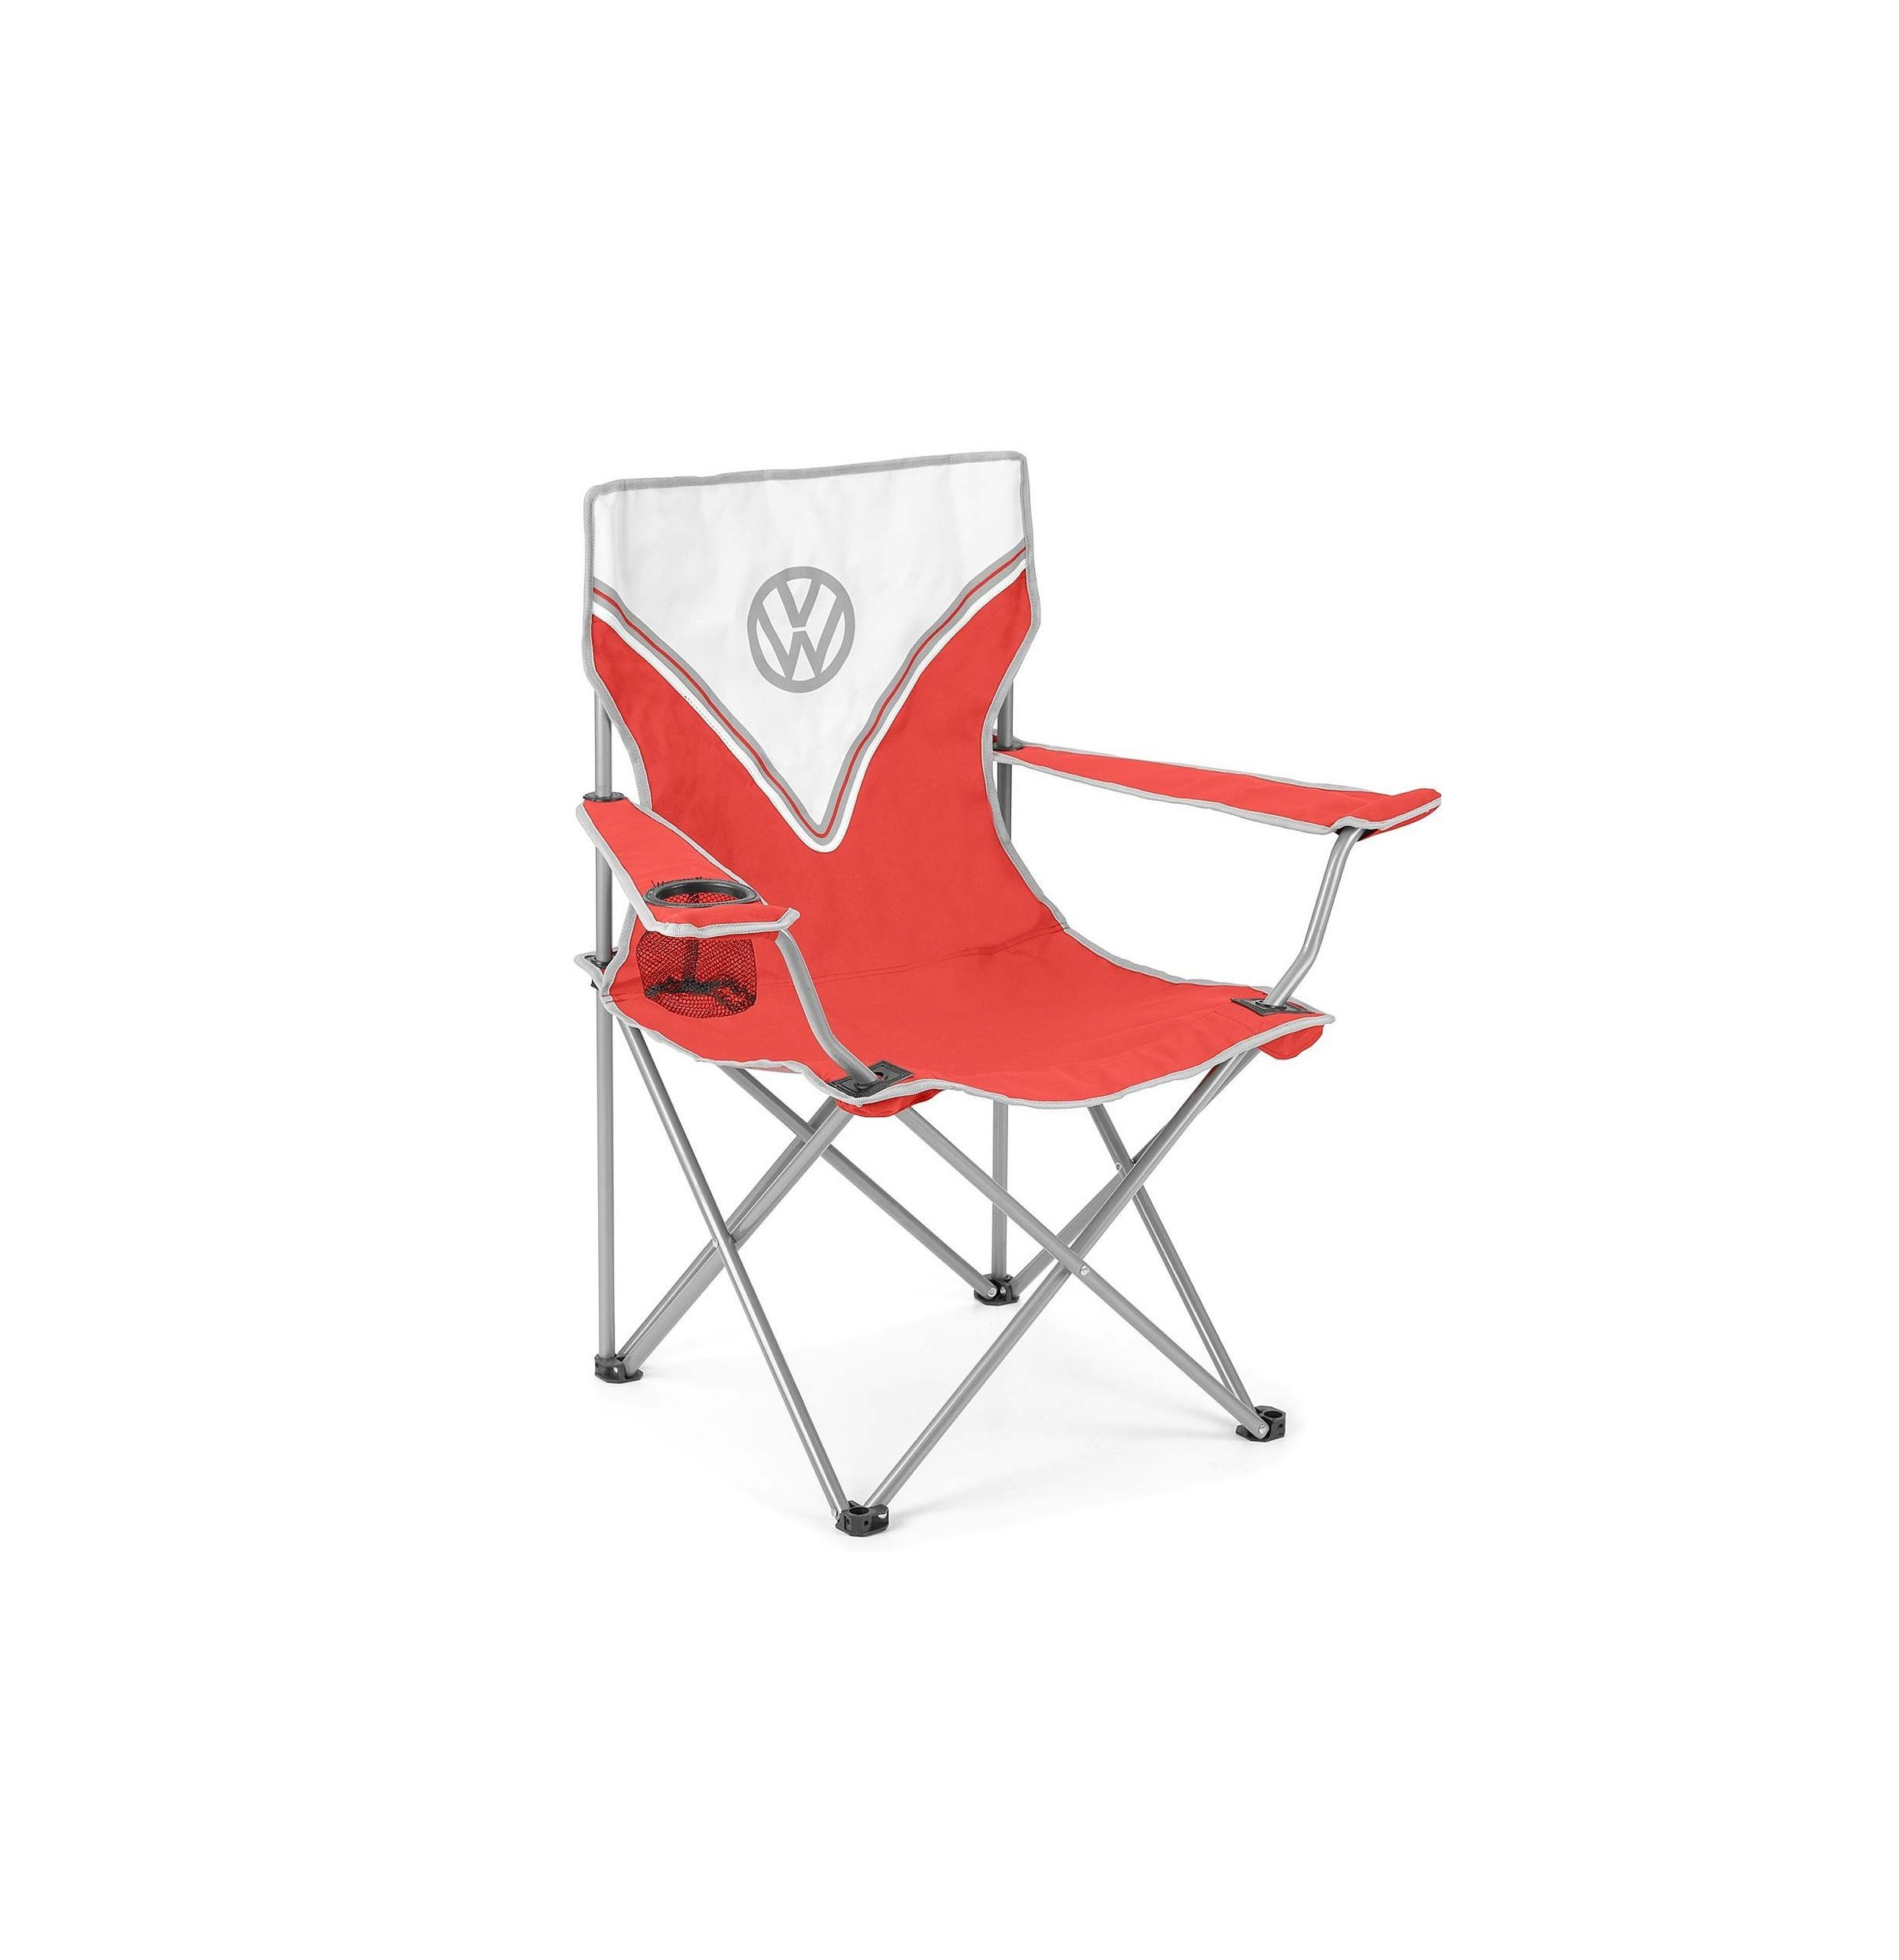 Vw Camping Chair Red